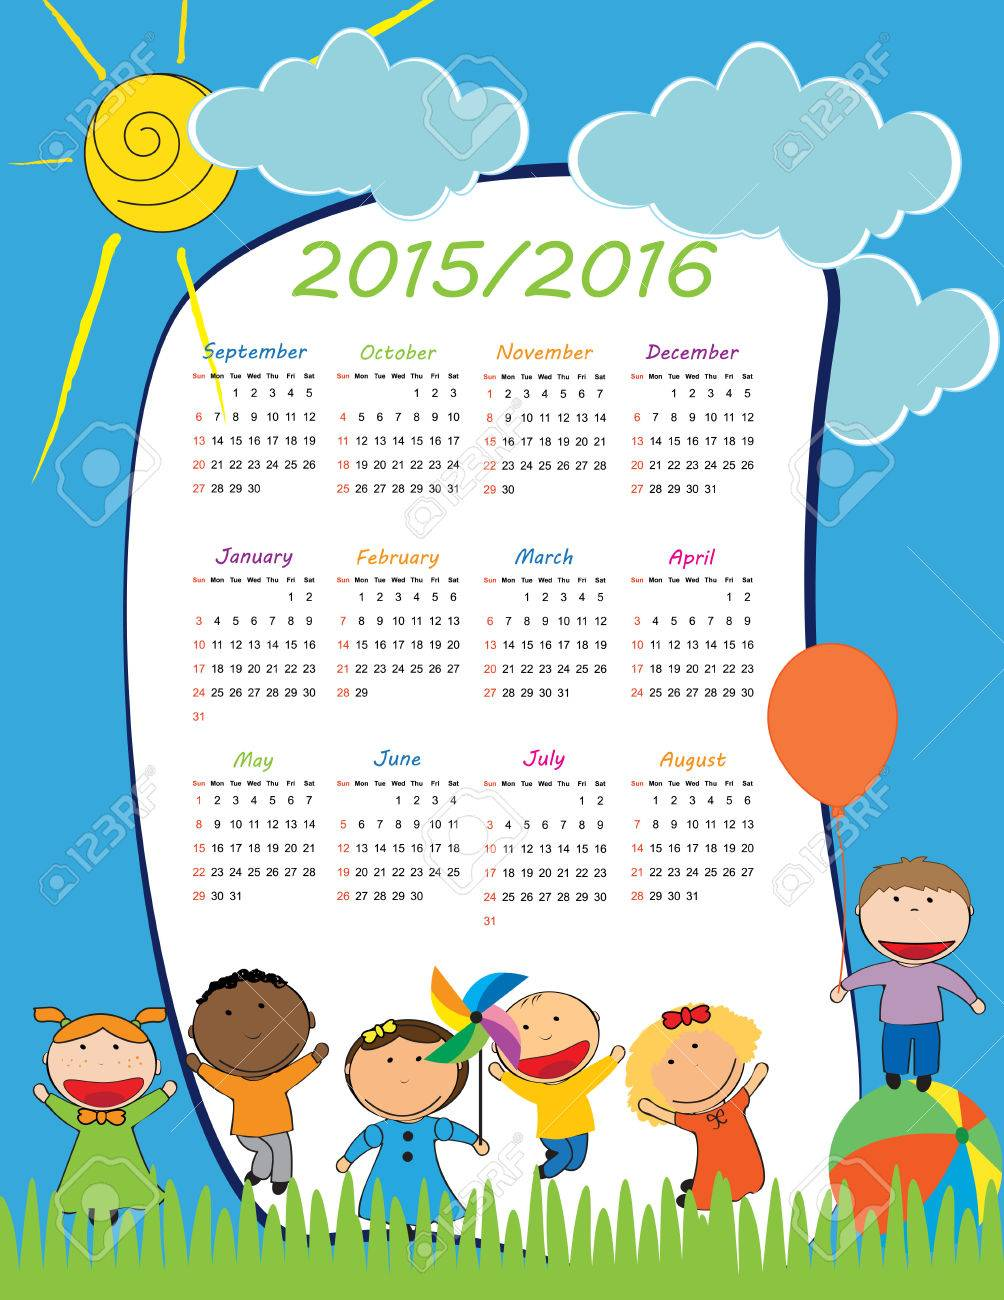 school calendar on new year school from 2015 to 2016 year stock vector 38210905